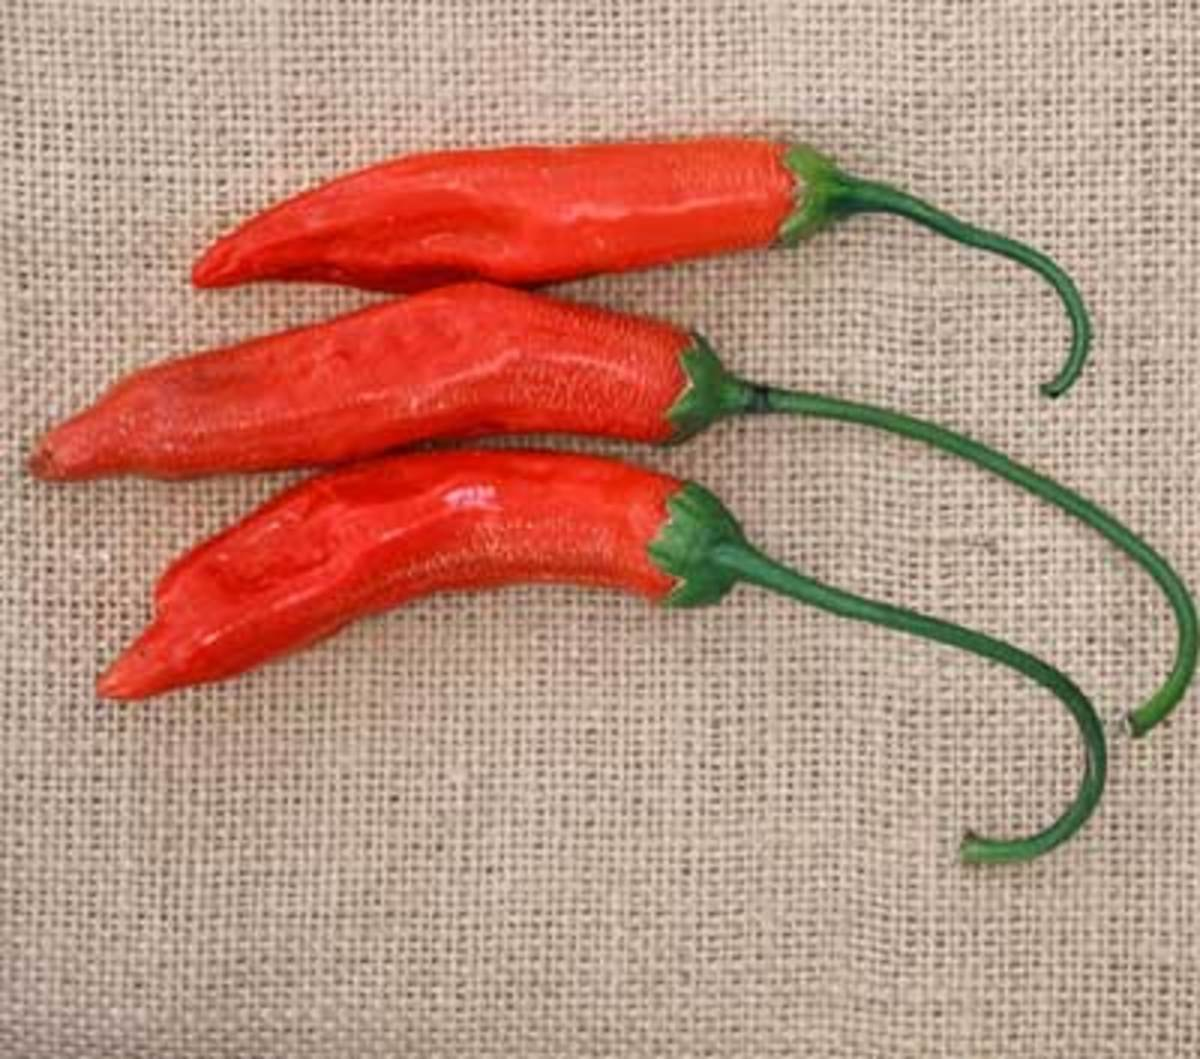 Aji Red are very hot 3- to 5-inch orange-red peppers that are generally dried into powder for use in sauces and stews. A Capsicum baccatum type with 30,000 to 50,000 Scoville units.